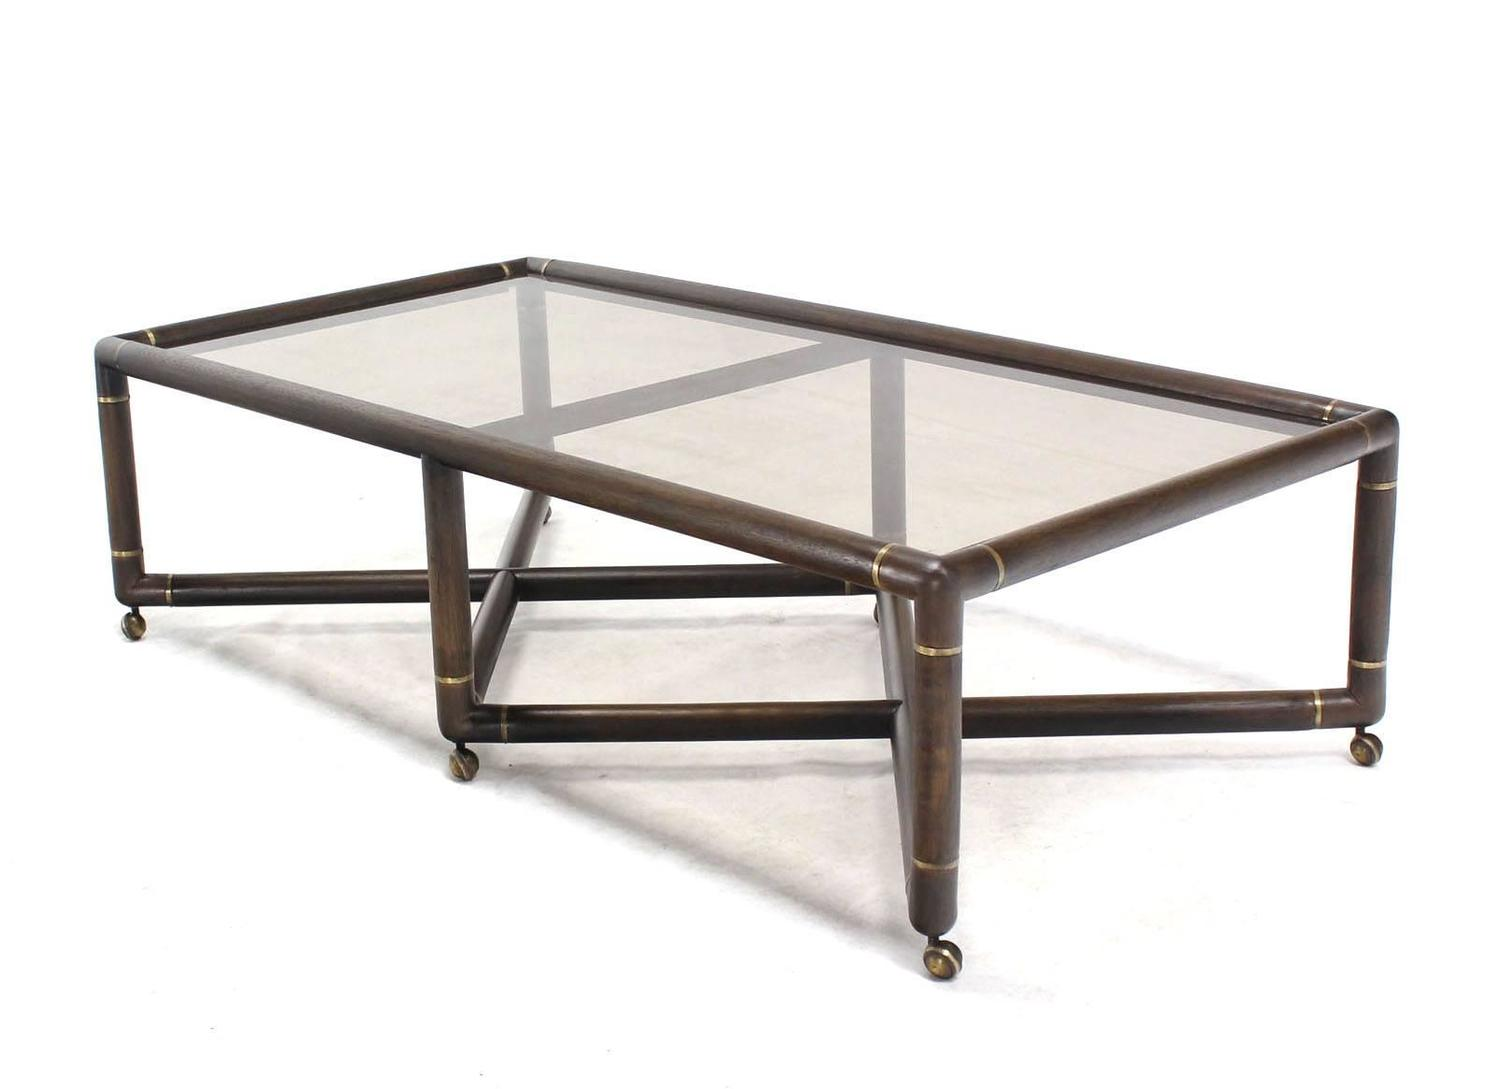 Double X Base Coffee Table On Wheels For Sale At 1stdibs